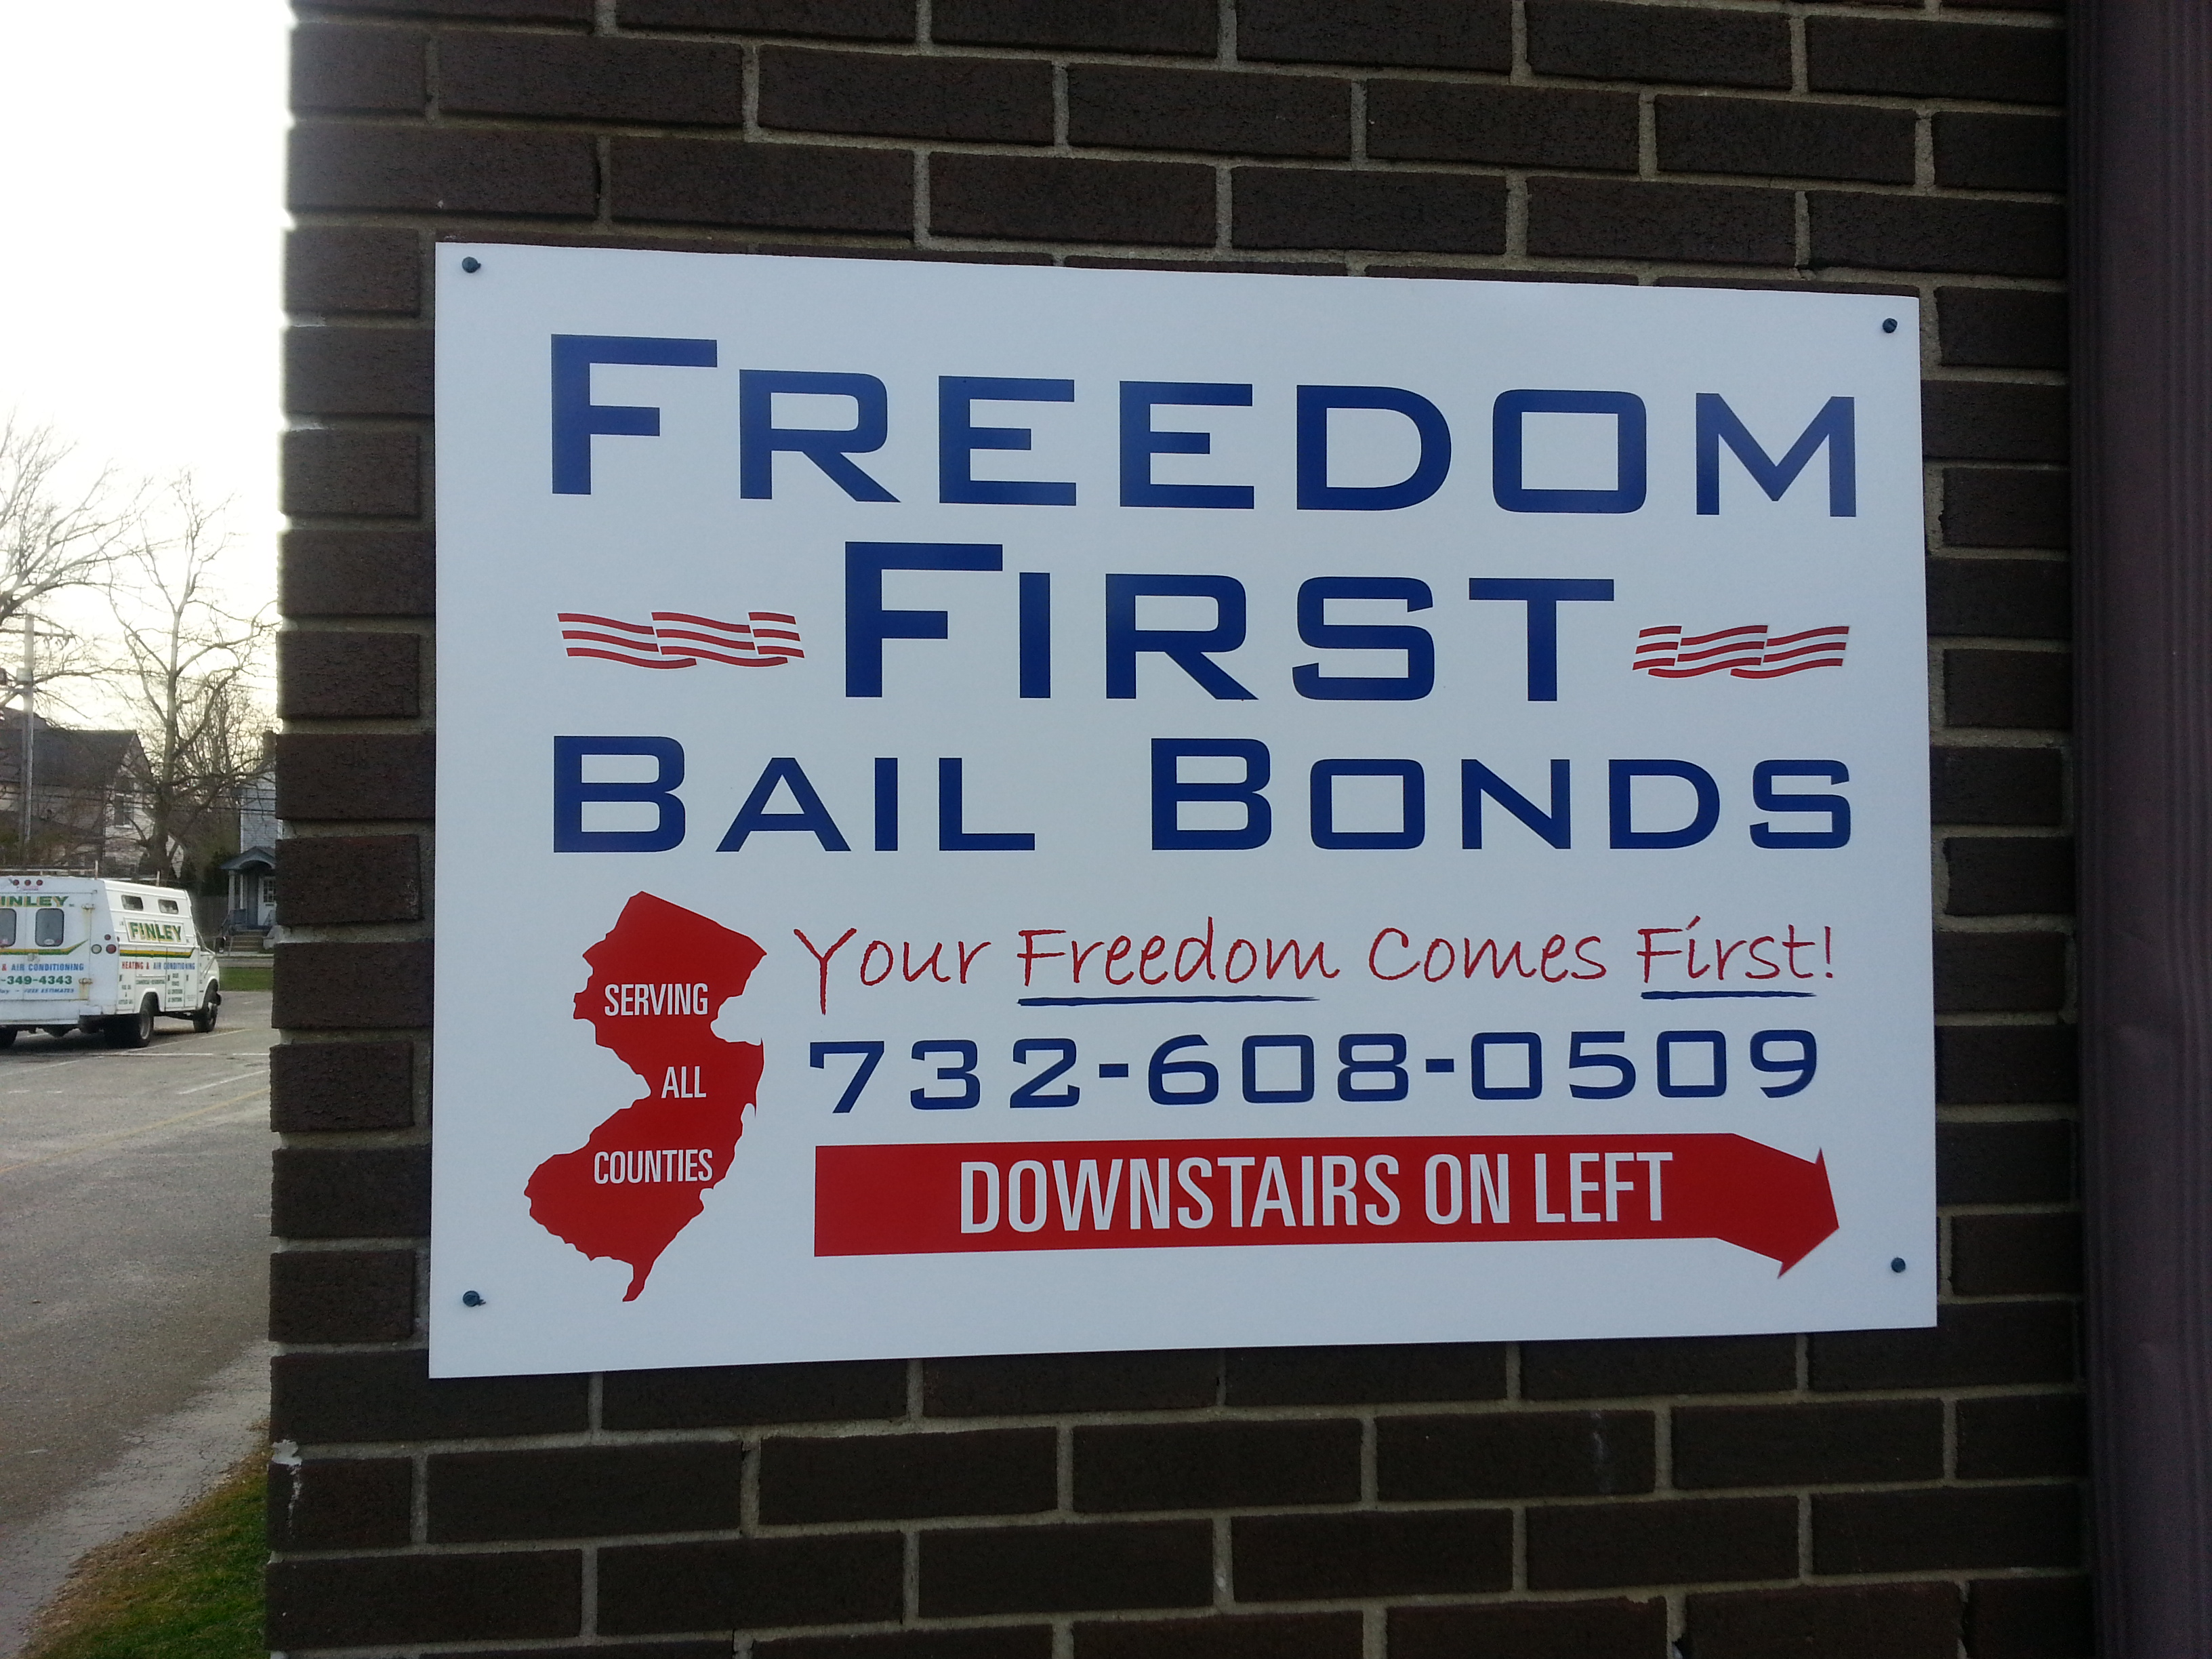 Freedom First Bail Bonds - ad image